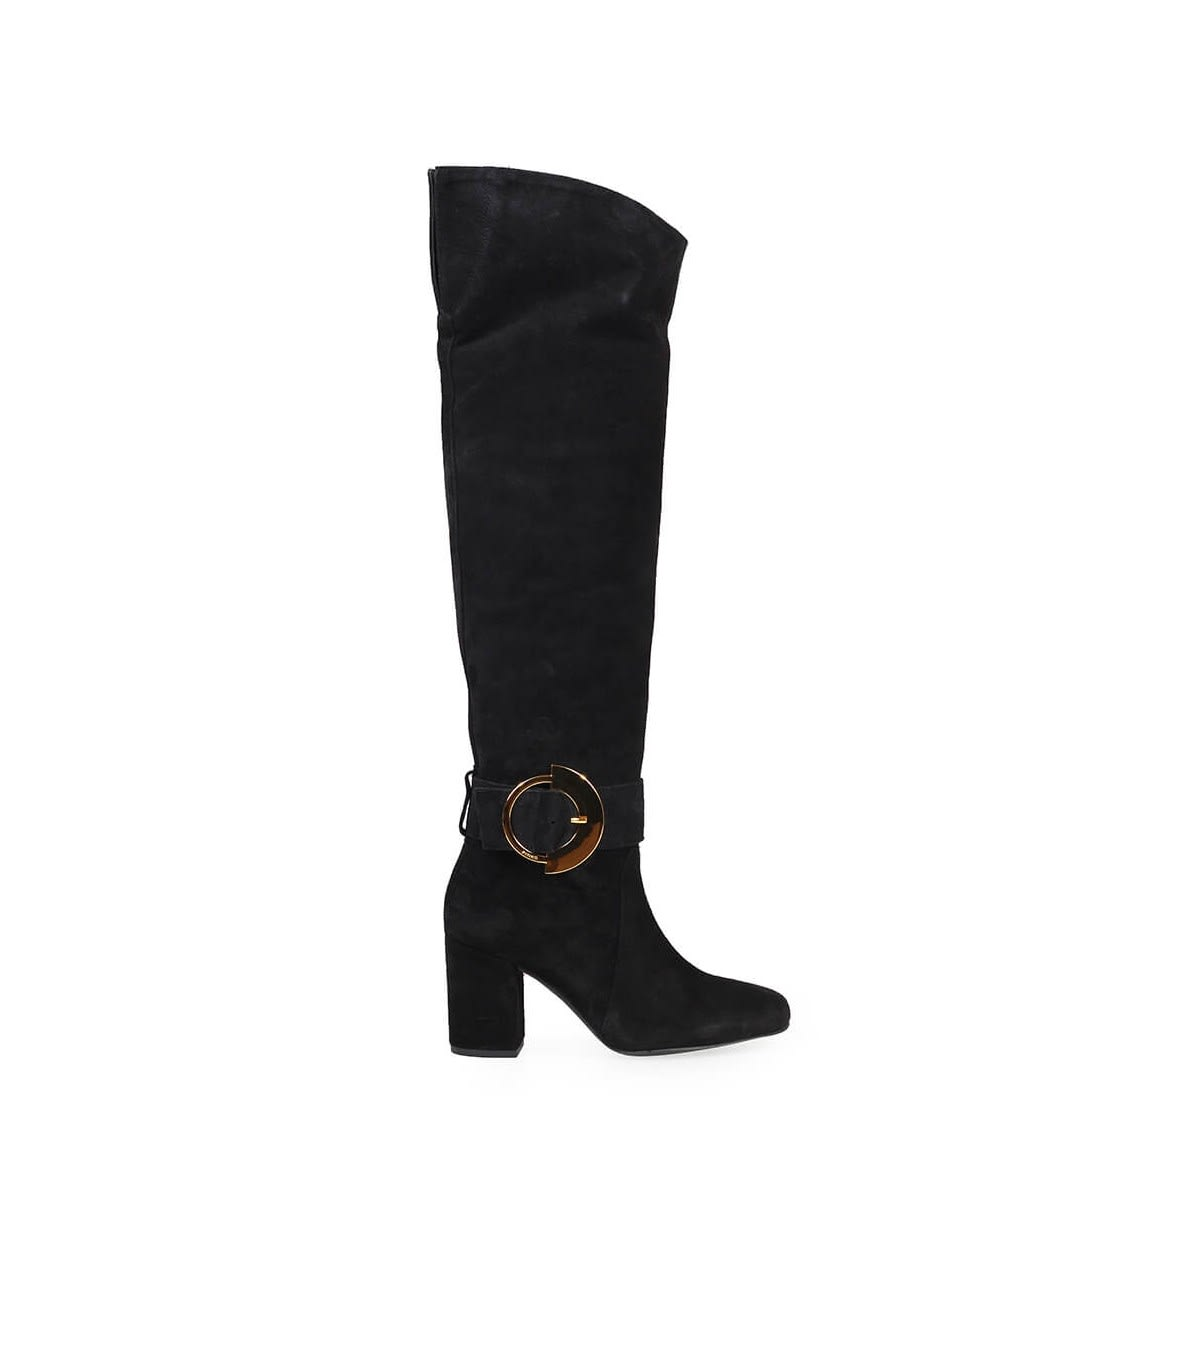 Pinko LAETITIA BLACK SUEDE HIGH KNEE BOOT